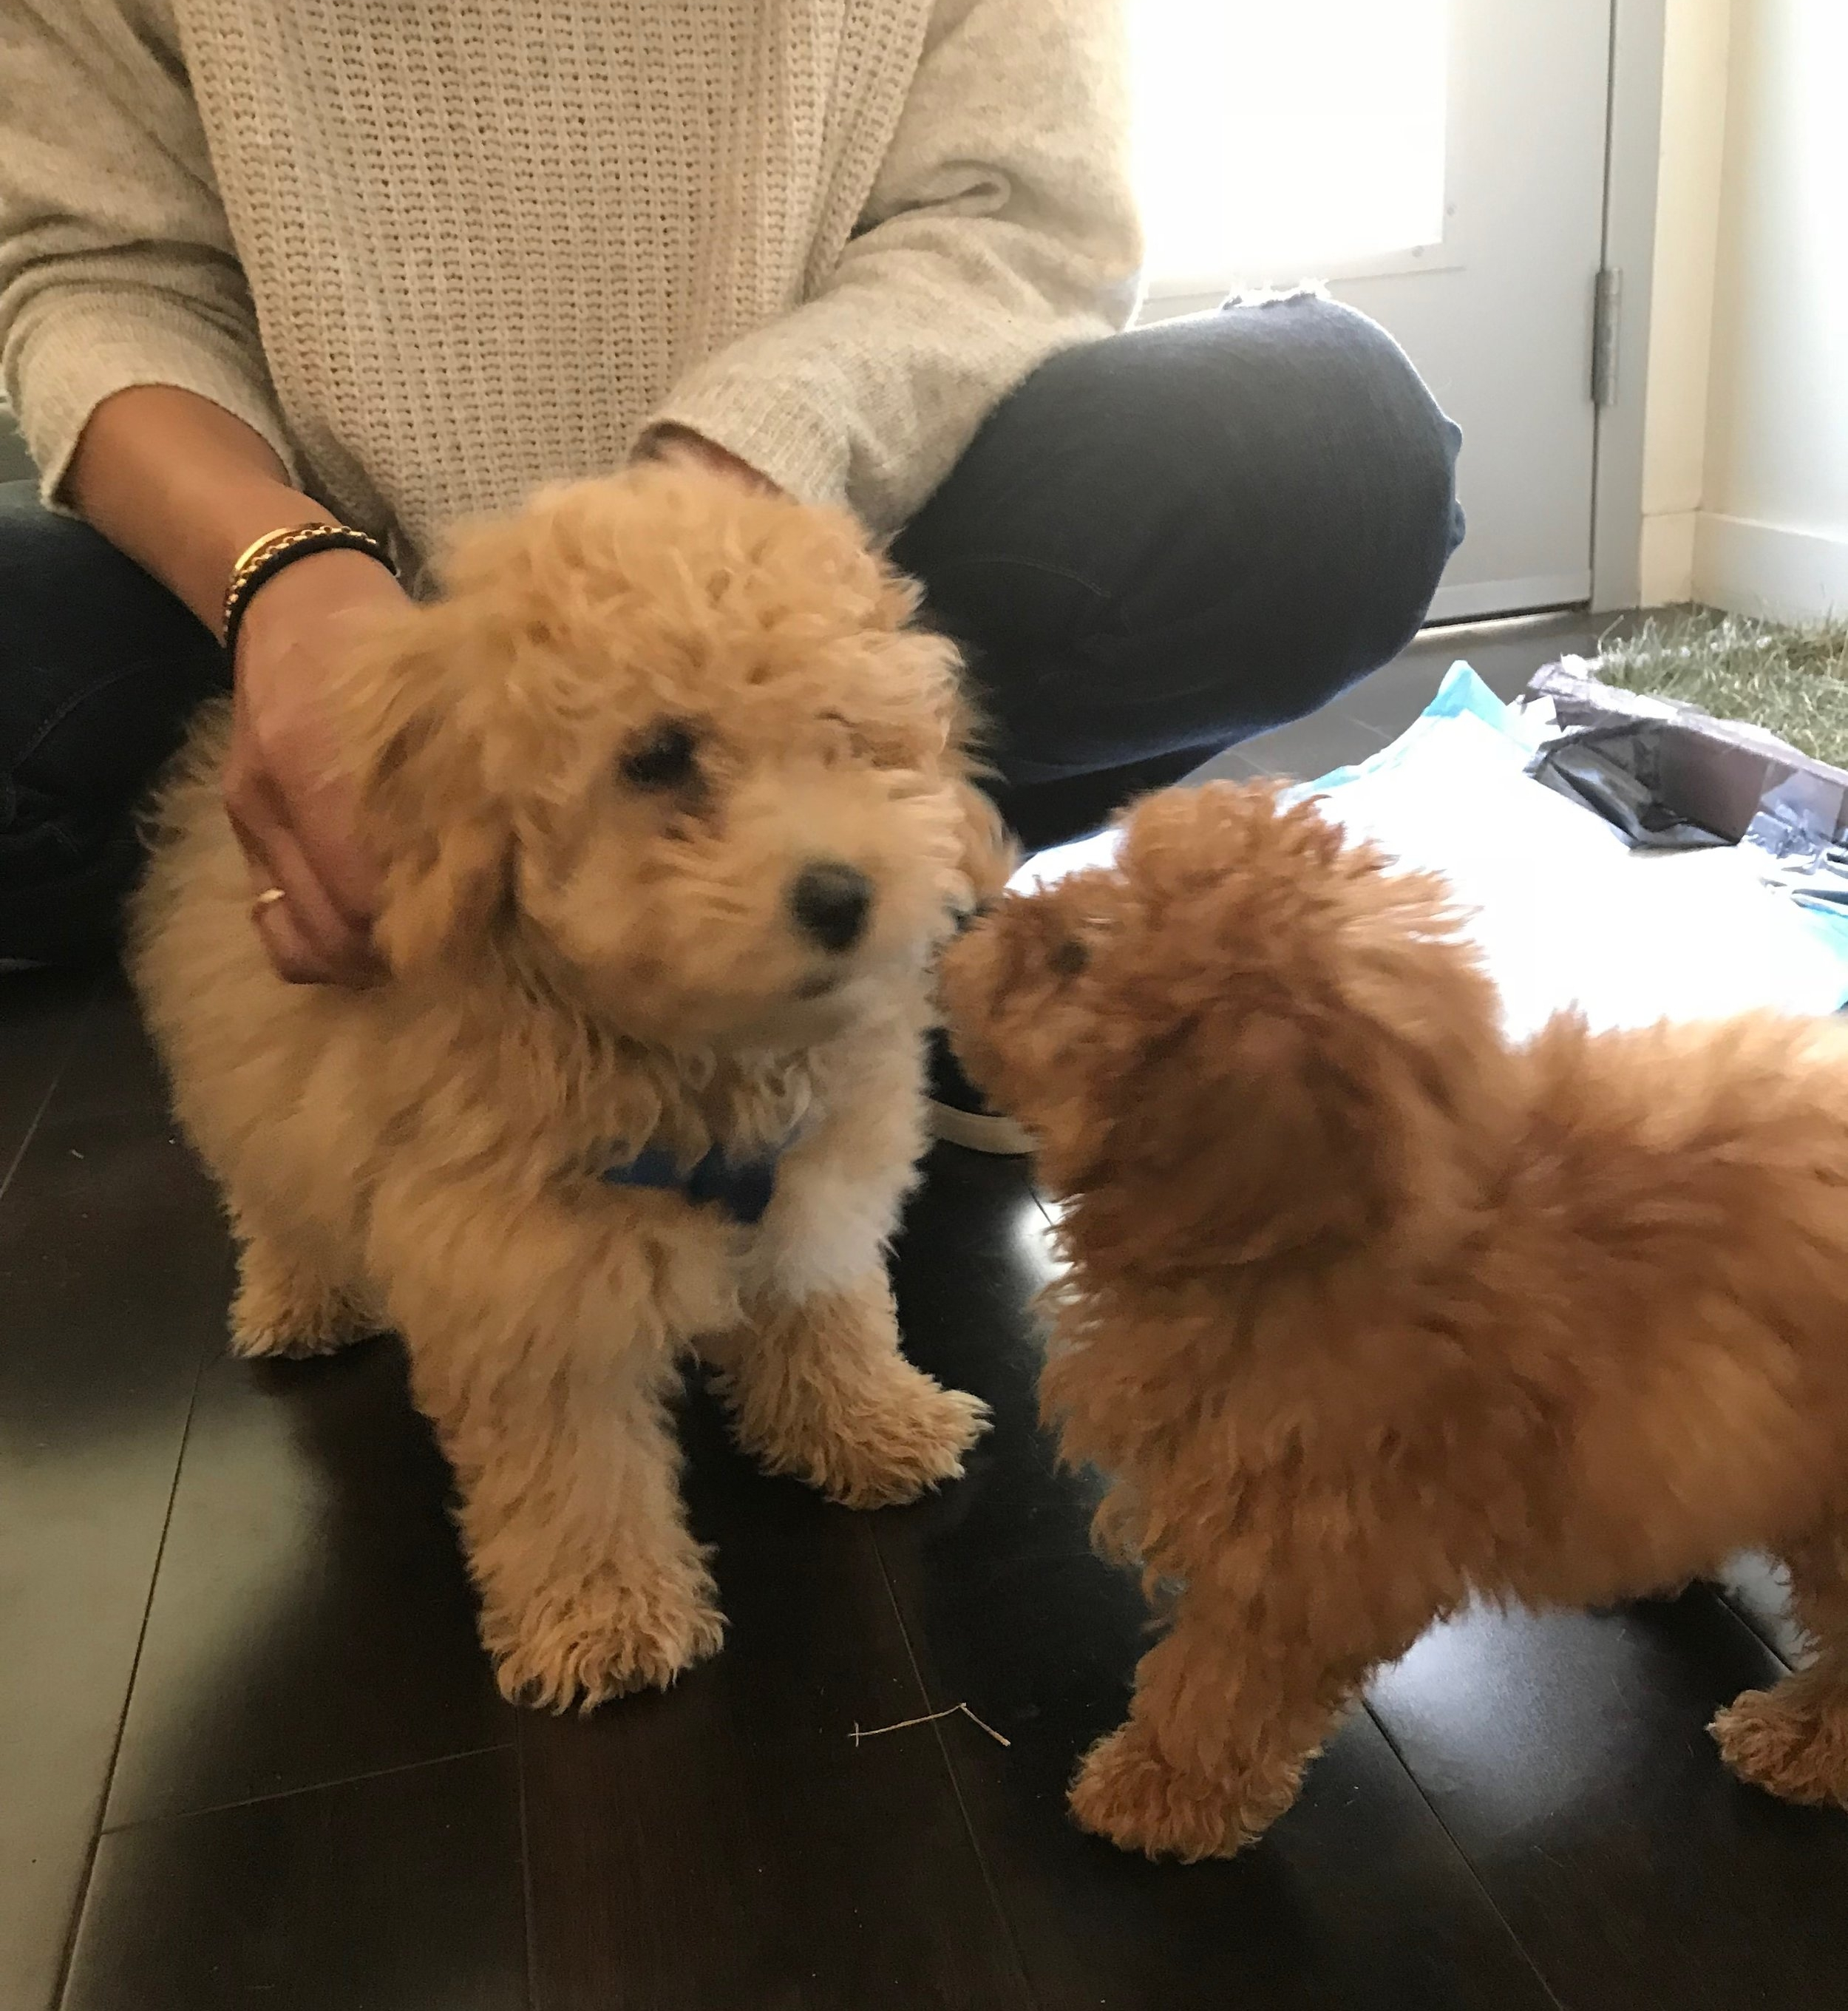 Puppy training 101: Raising a puppy in Los Angeles requires that you socialize a puppy early by introducing them to other puppies at puppy class and through friends.